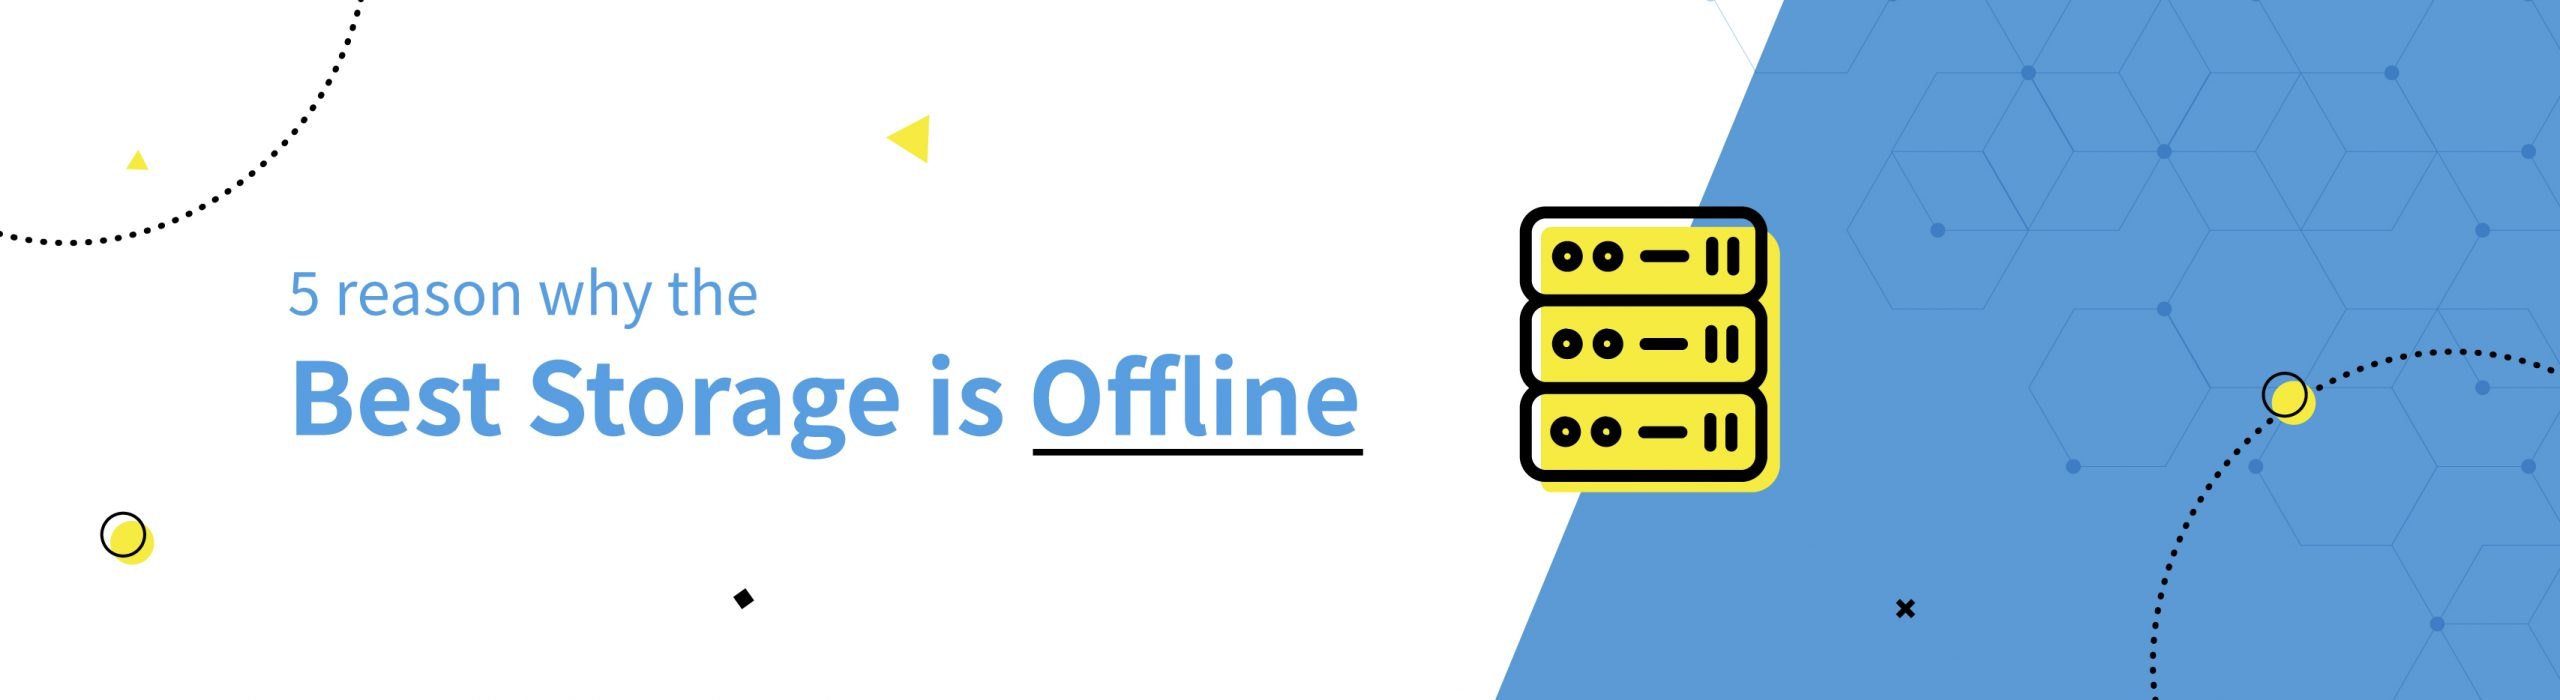 5 reasons why the best storage is offline